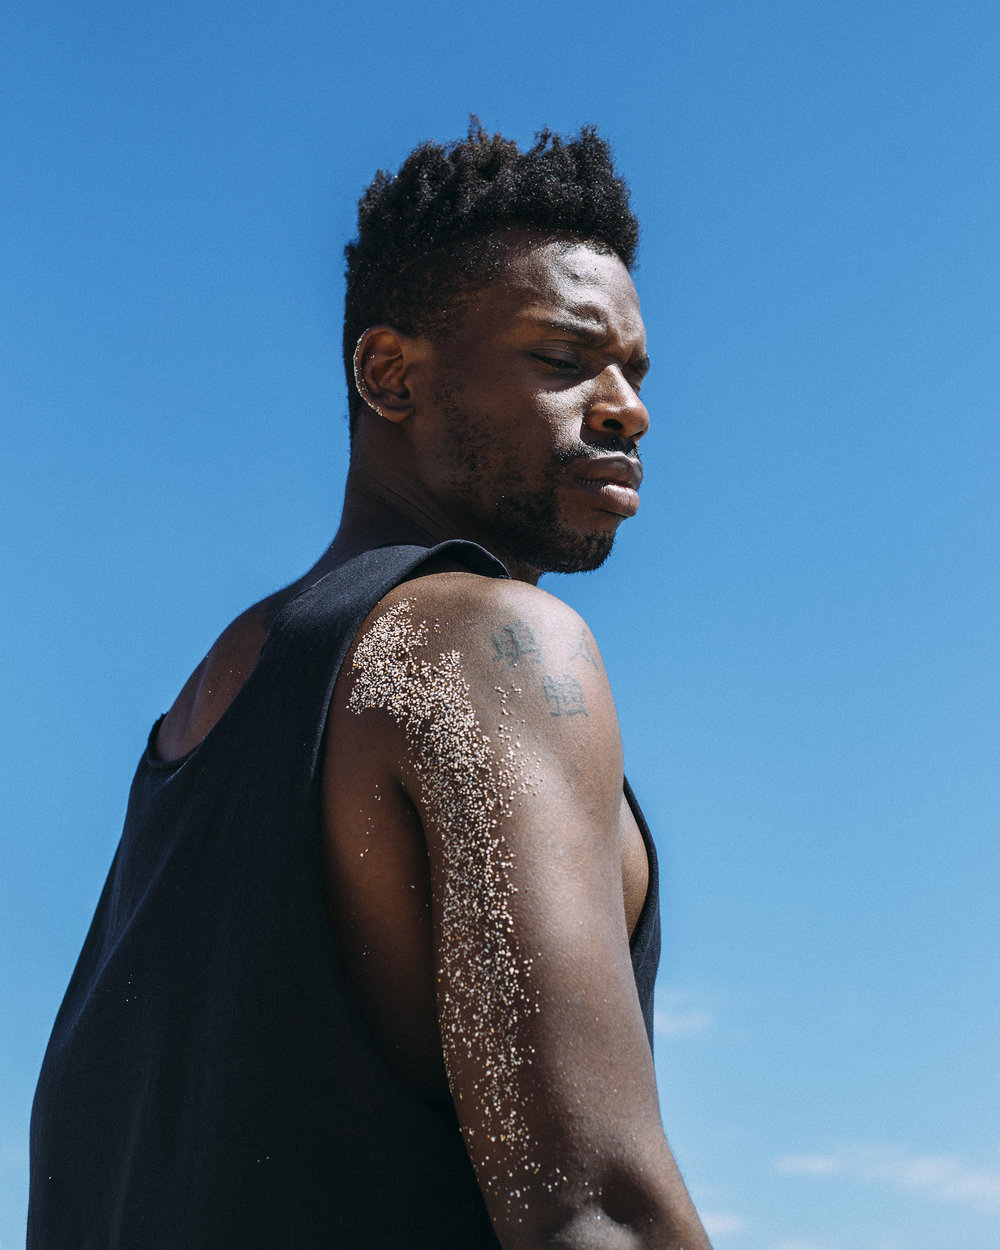 Gaika for the FADER